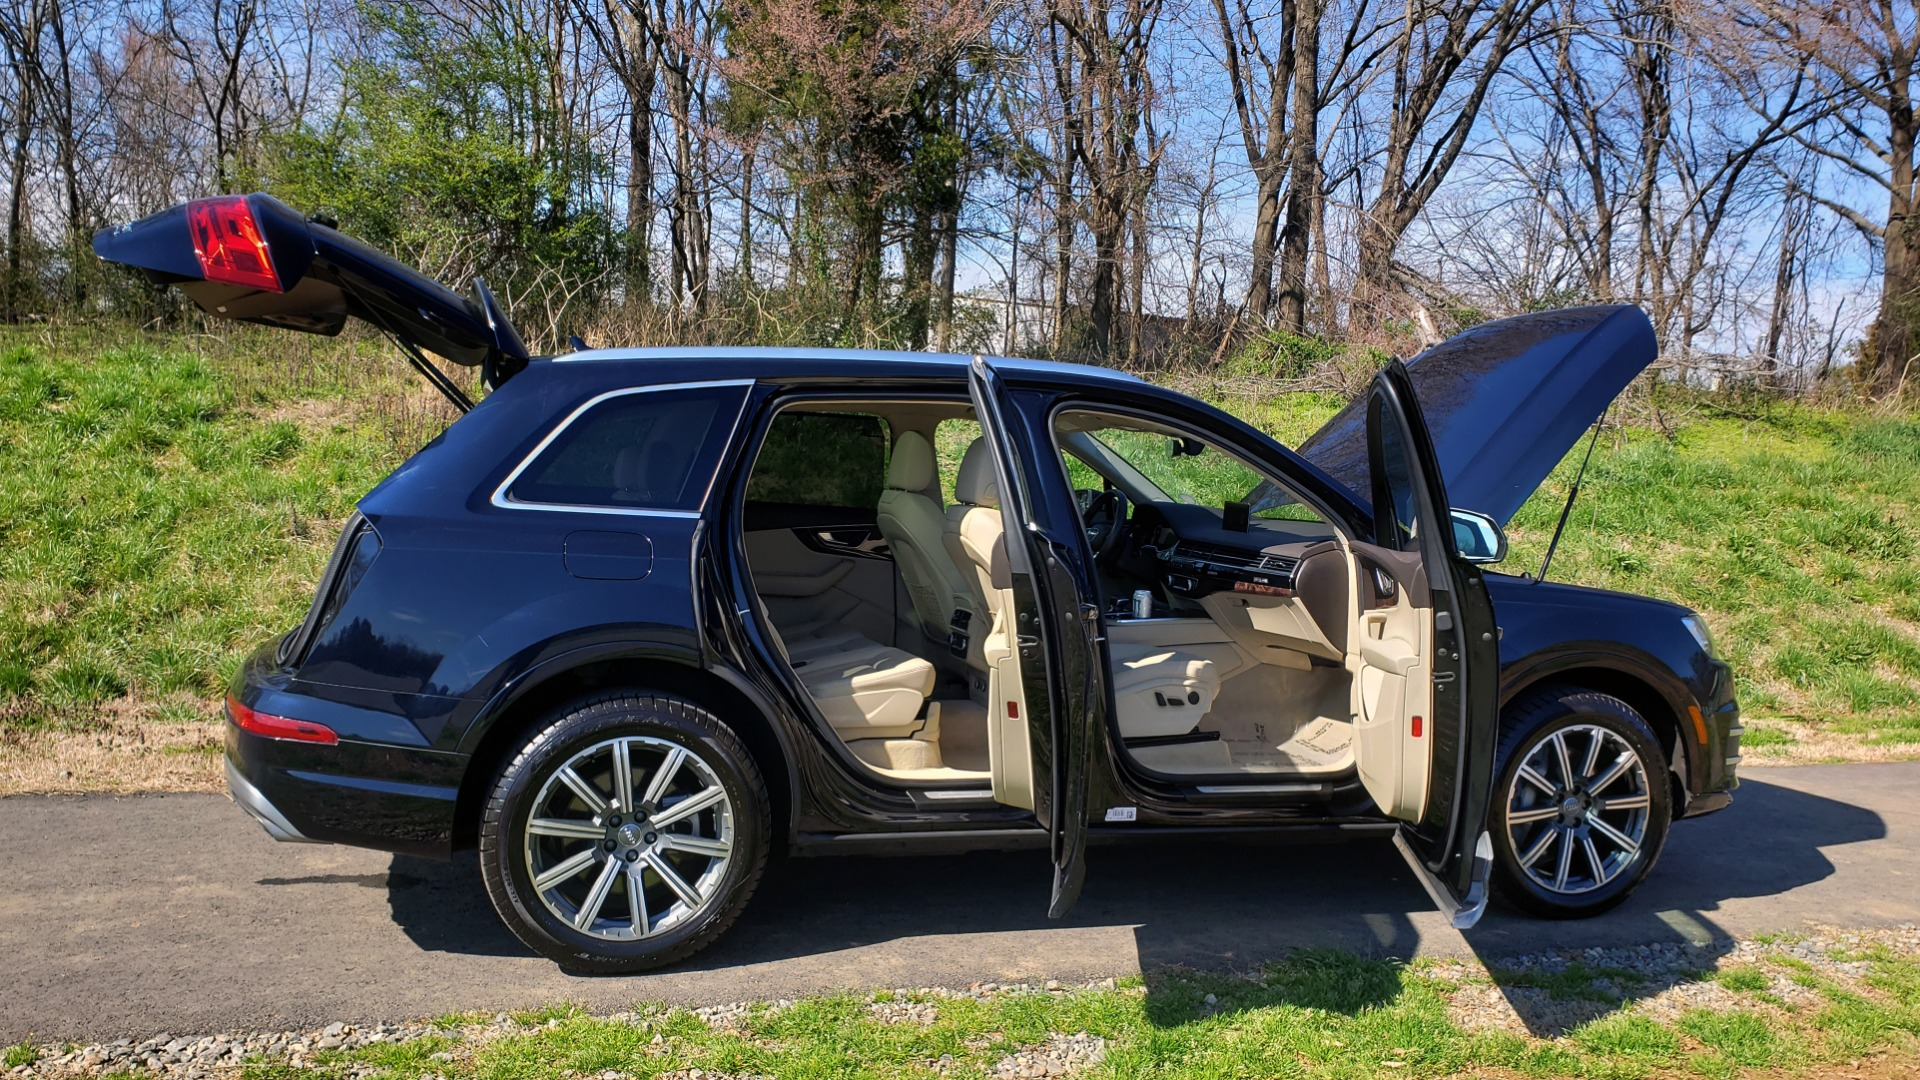 Used 2018 Audi Q7 PRESTIGE 3.0T CLD WTHR / NAV / BOSE / HEADS-UP / REARVIEW for sale Sold at Formula Imports in Charlotte NC 28227 15